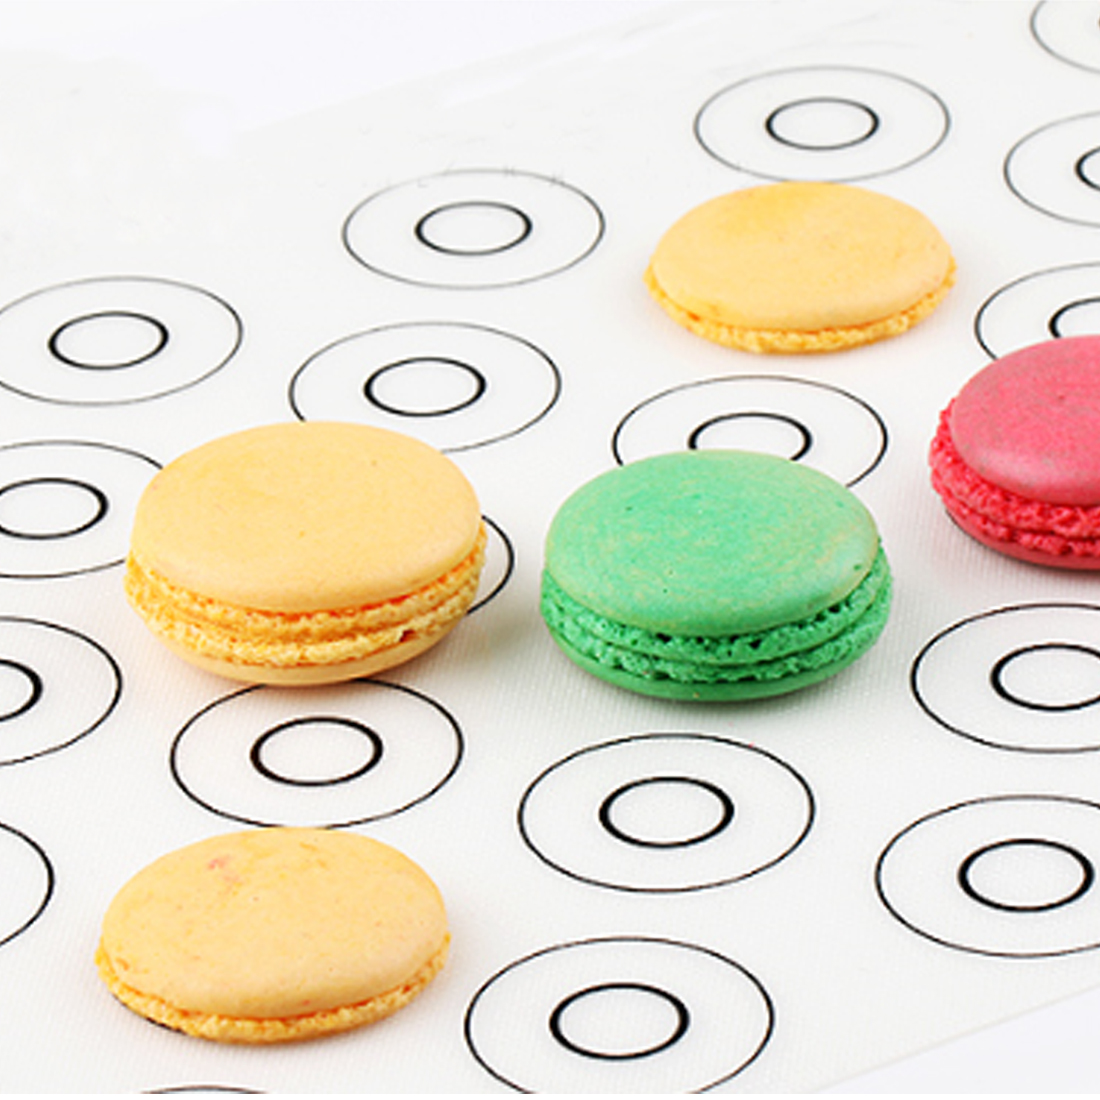 Silicone Dough Mat Macaron Pastry Oven Baking Sheet Tray Liner Cake Mold Pad !